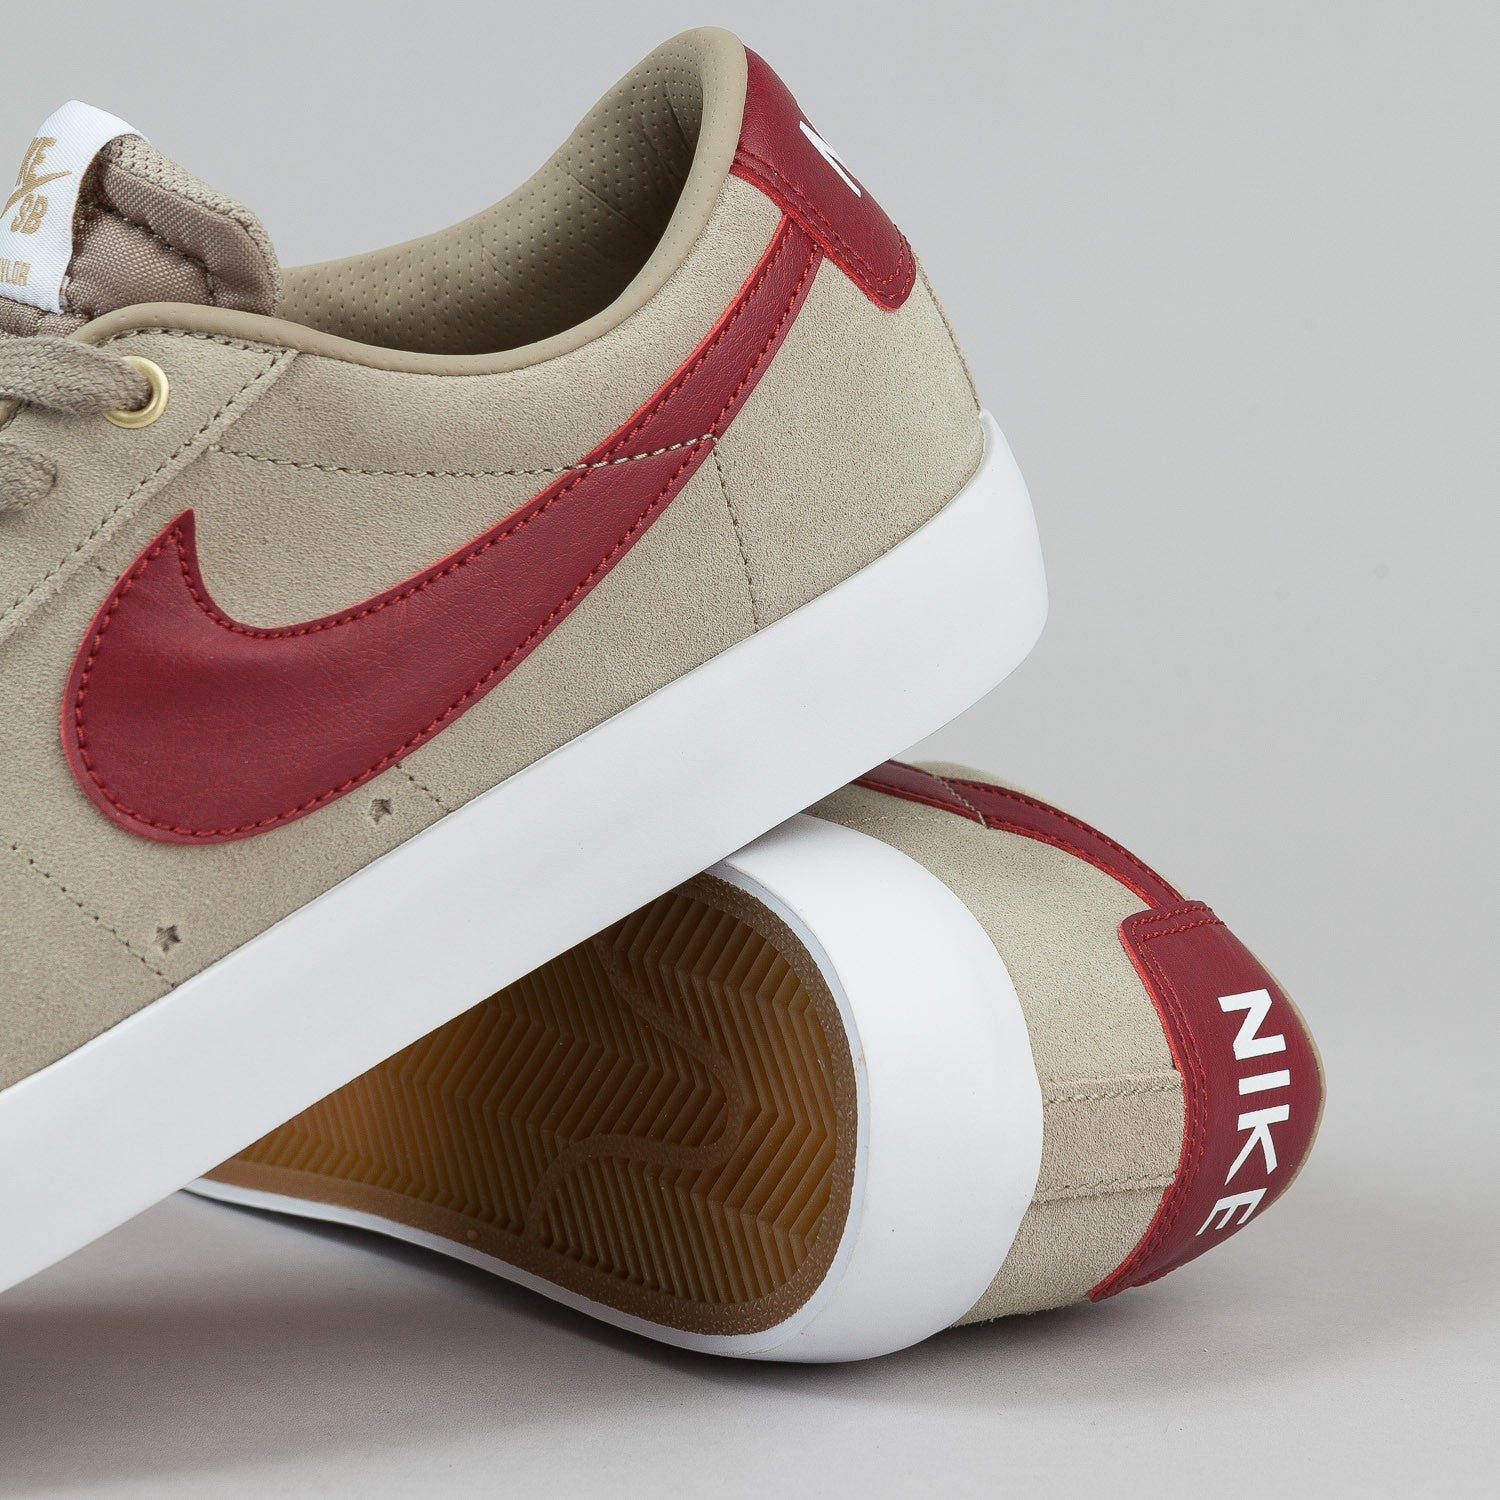 Nike SB Blazer Low GT Shoes - Bamboo / Team Red / White